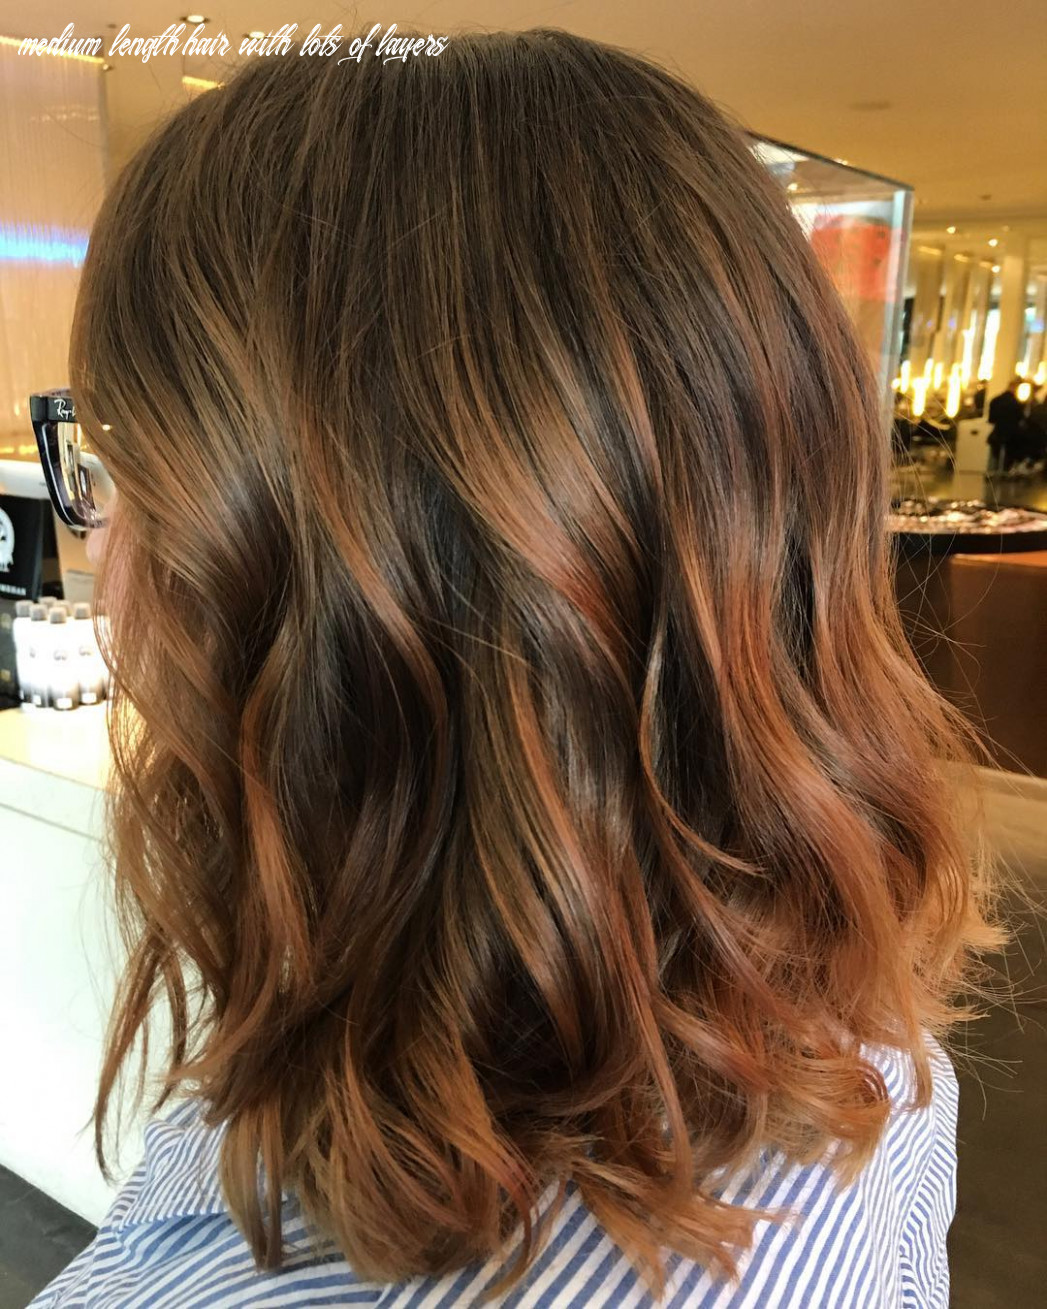 12 exciting medium length layered haircuts in fab new colors